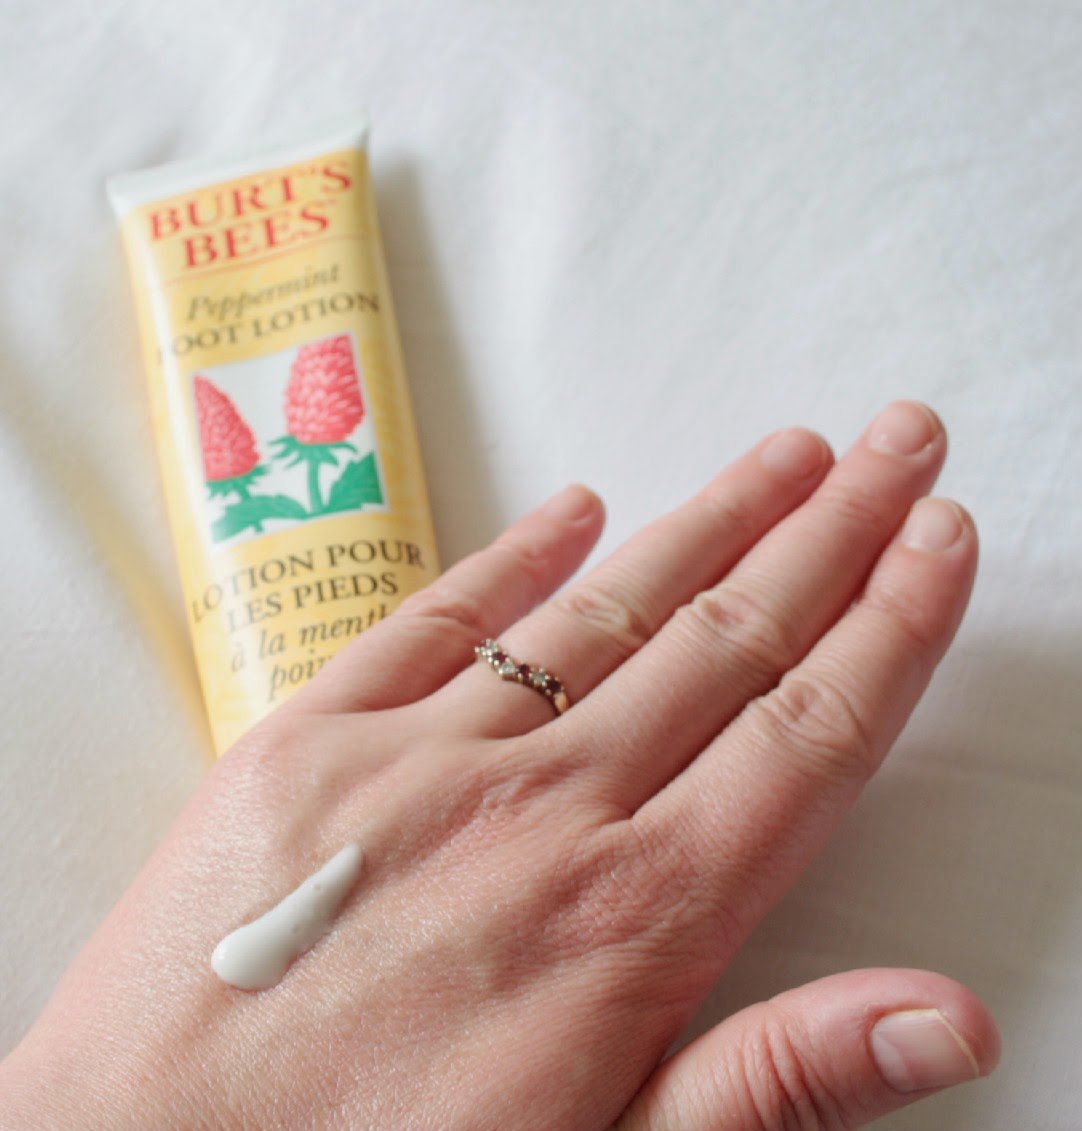 Give your tired tootsies a treat with Burt's Bees Peppermint Foot Lotion - when rubbed in, the peppermint oil will help your feet feel so refreshed!